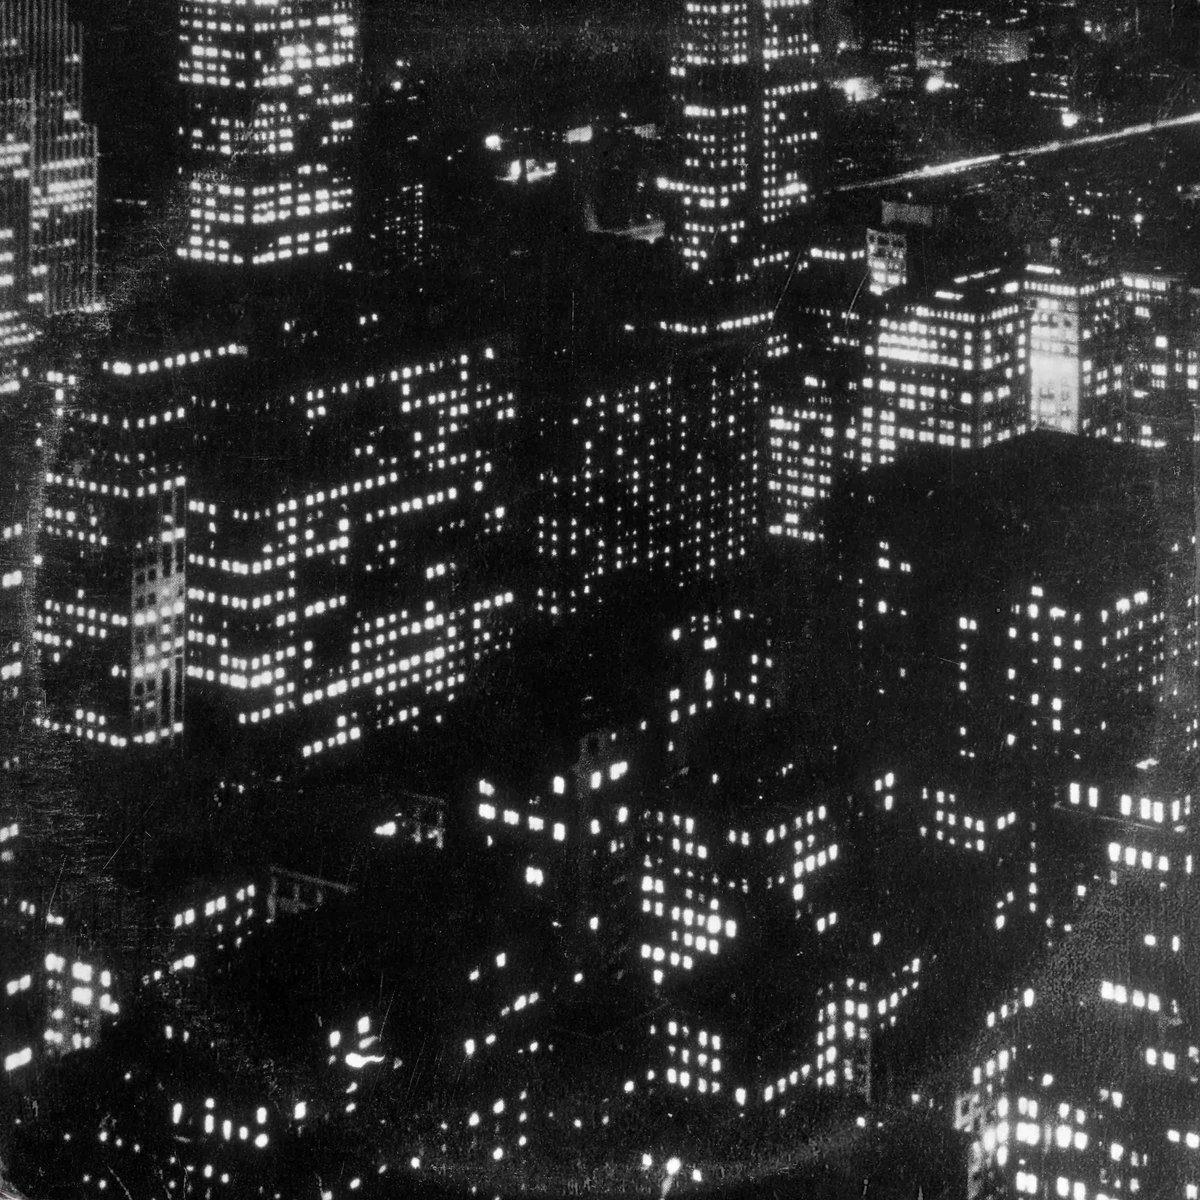 Timber Timbre | Sincerely, Future Pollution